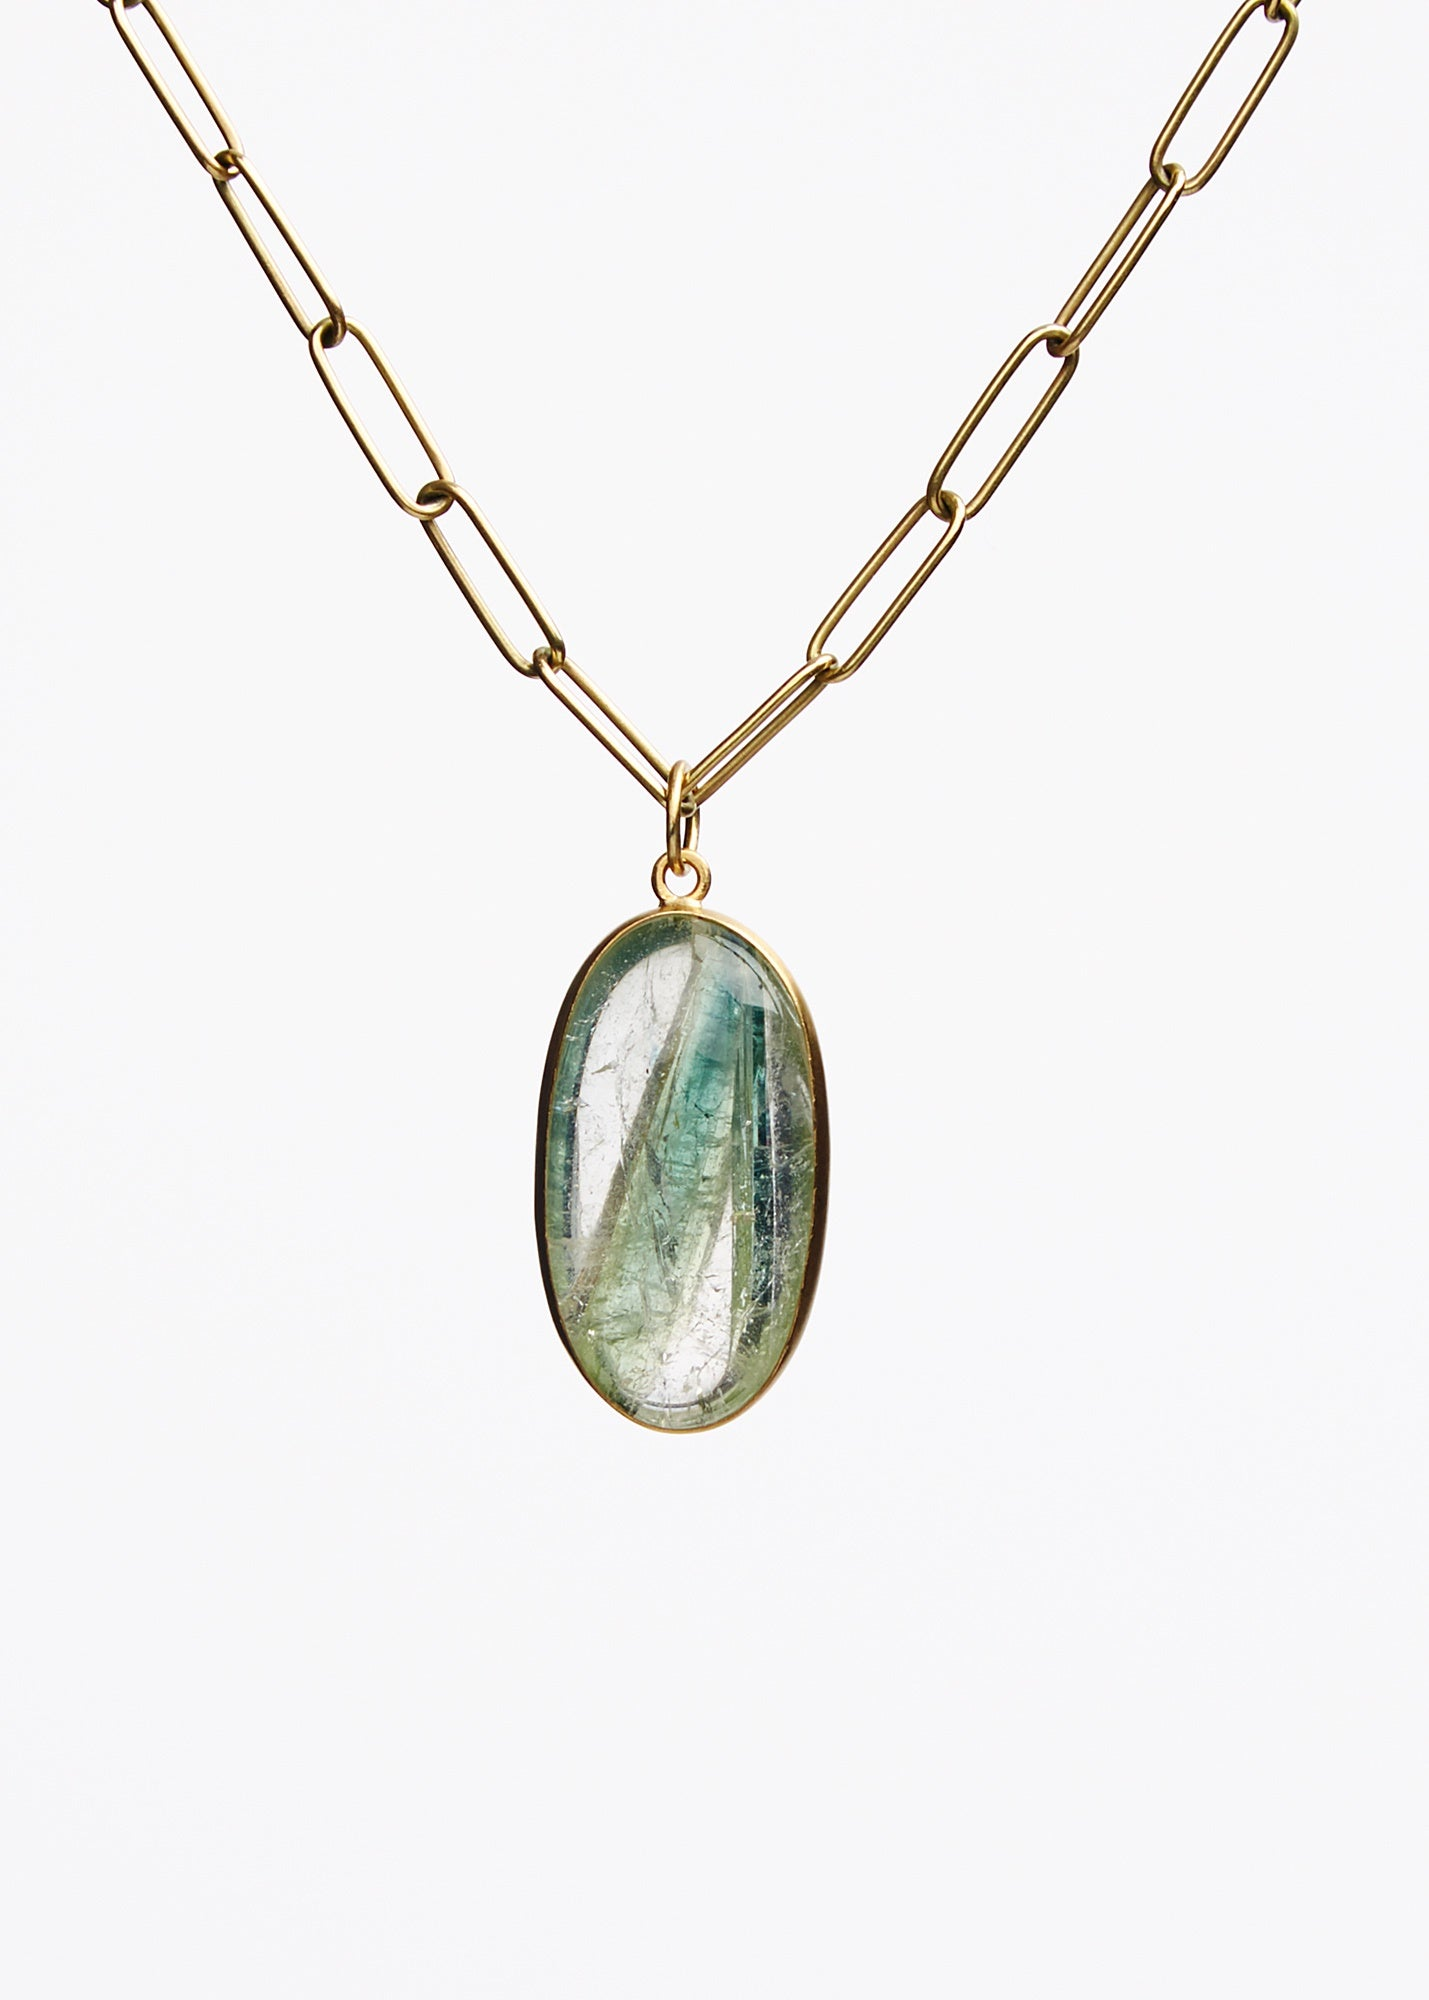 Maria Beaulieu Brazilian Green Tourmaline In Quartz Pendant